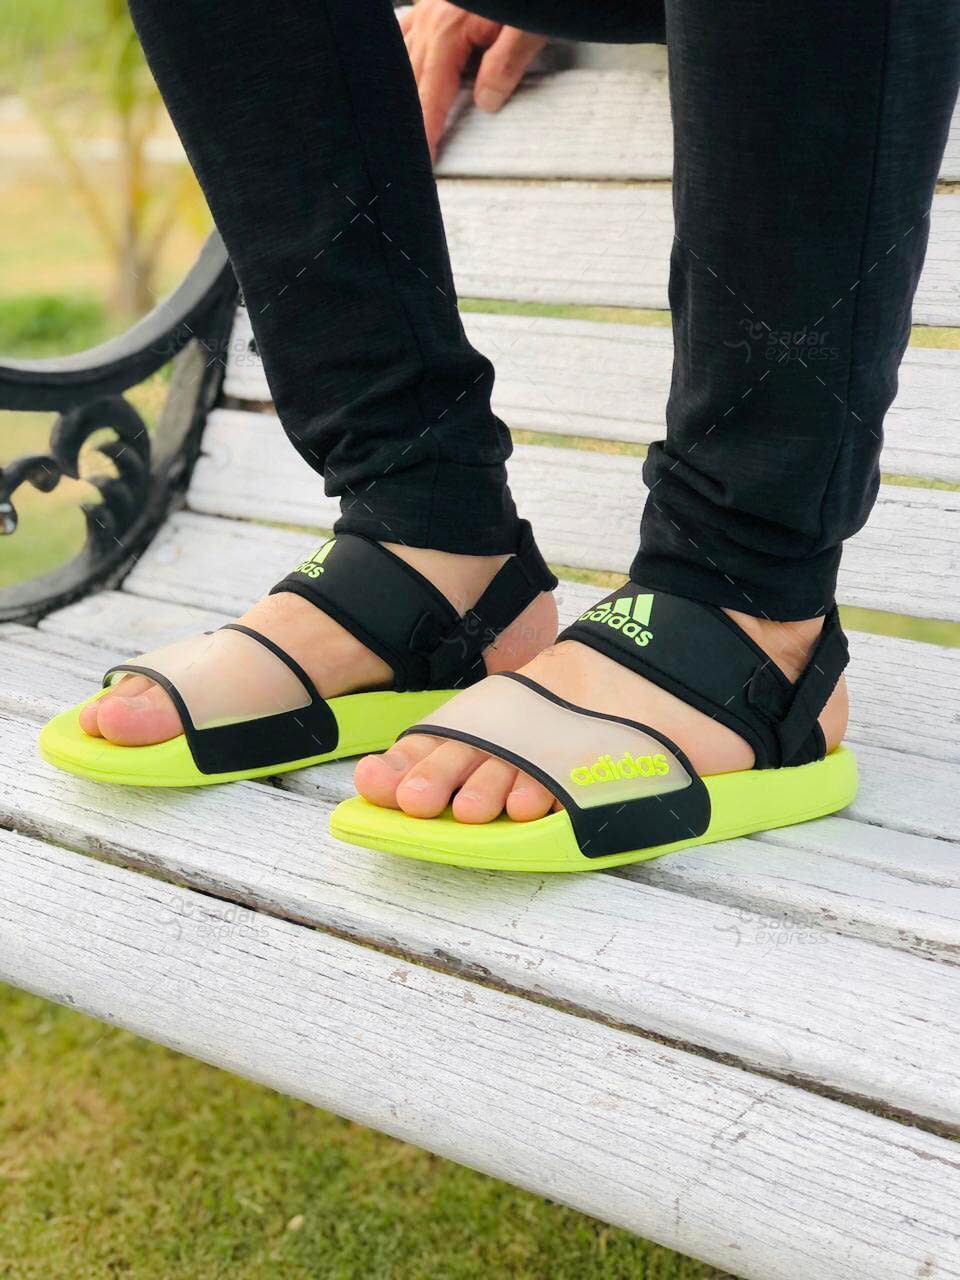 sports silicon rubber sandal for men 6